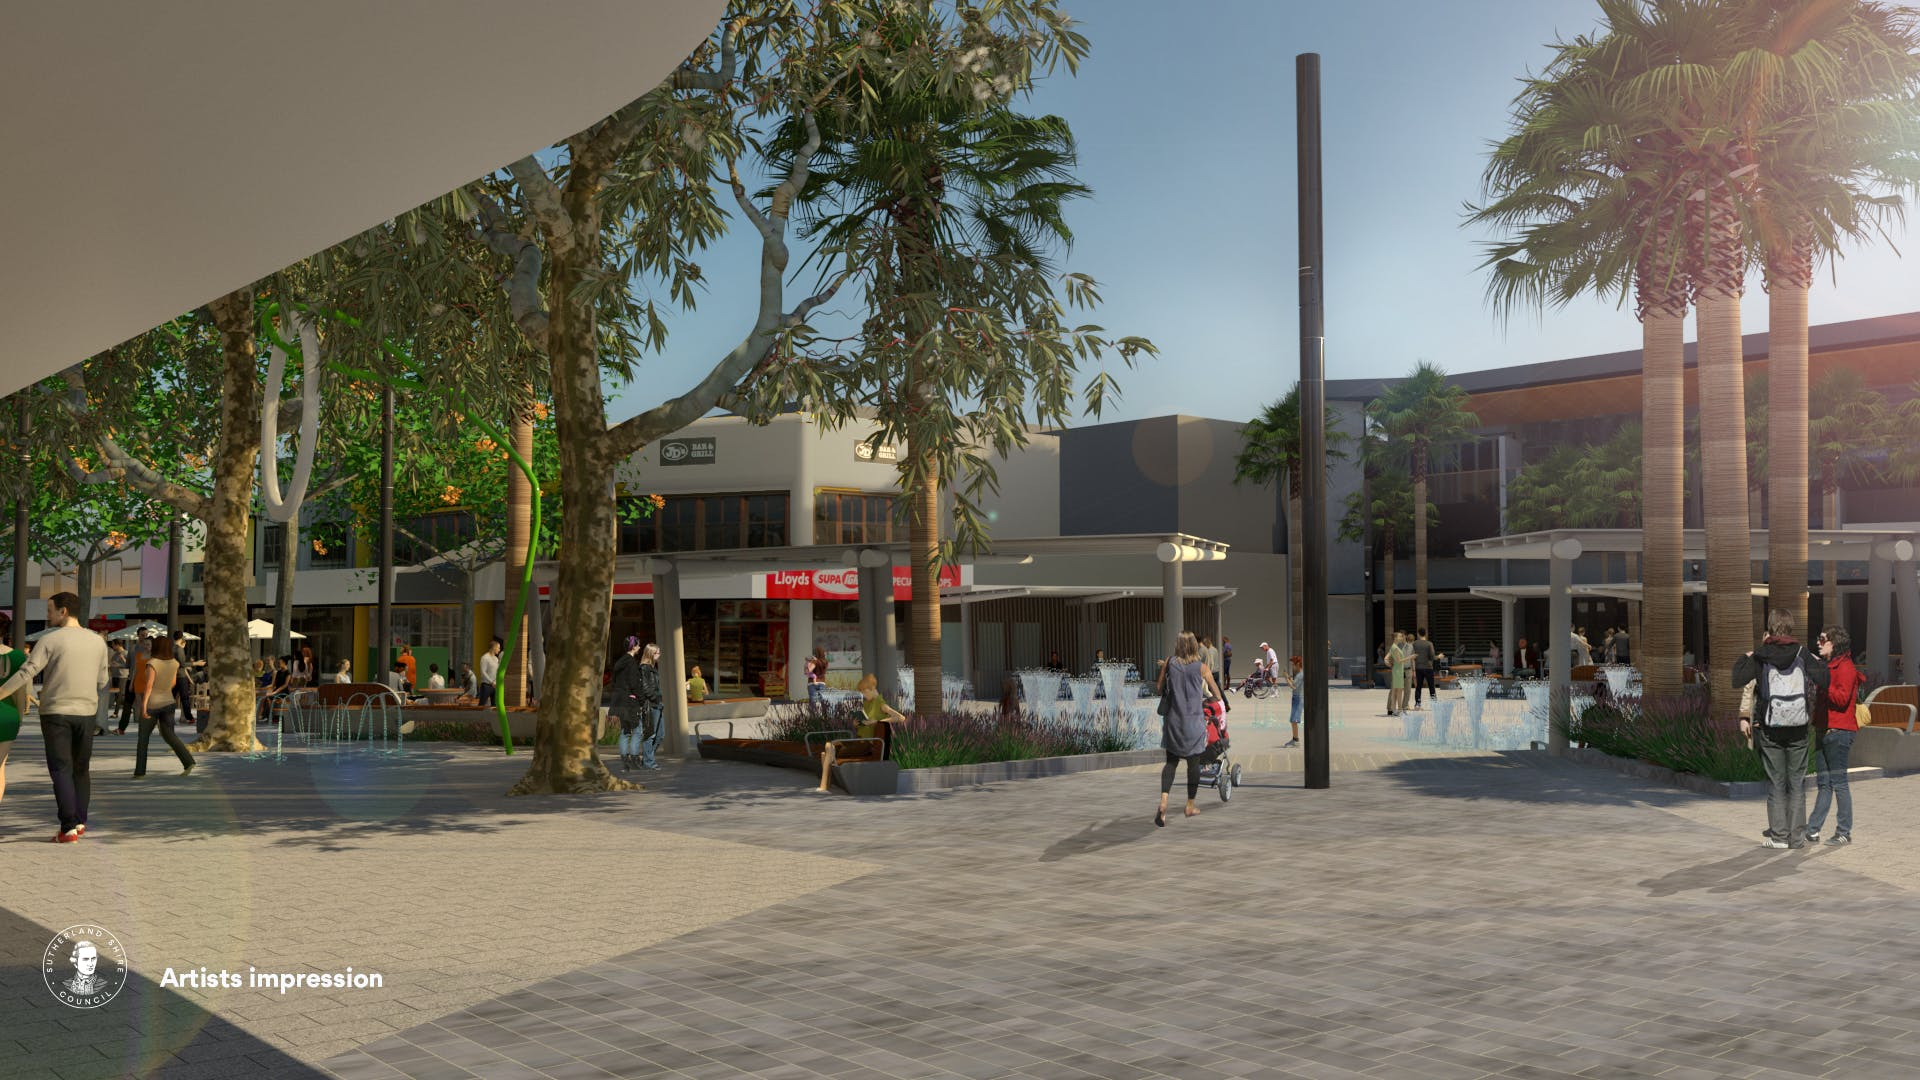 View of Cronulla Plaza from Cinema towards the Square